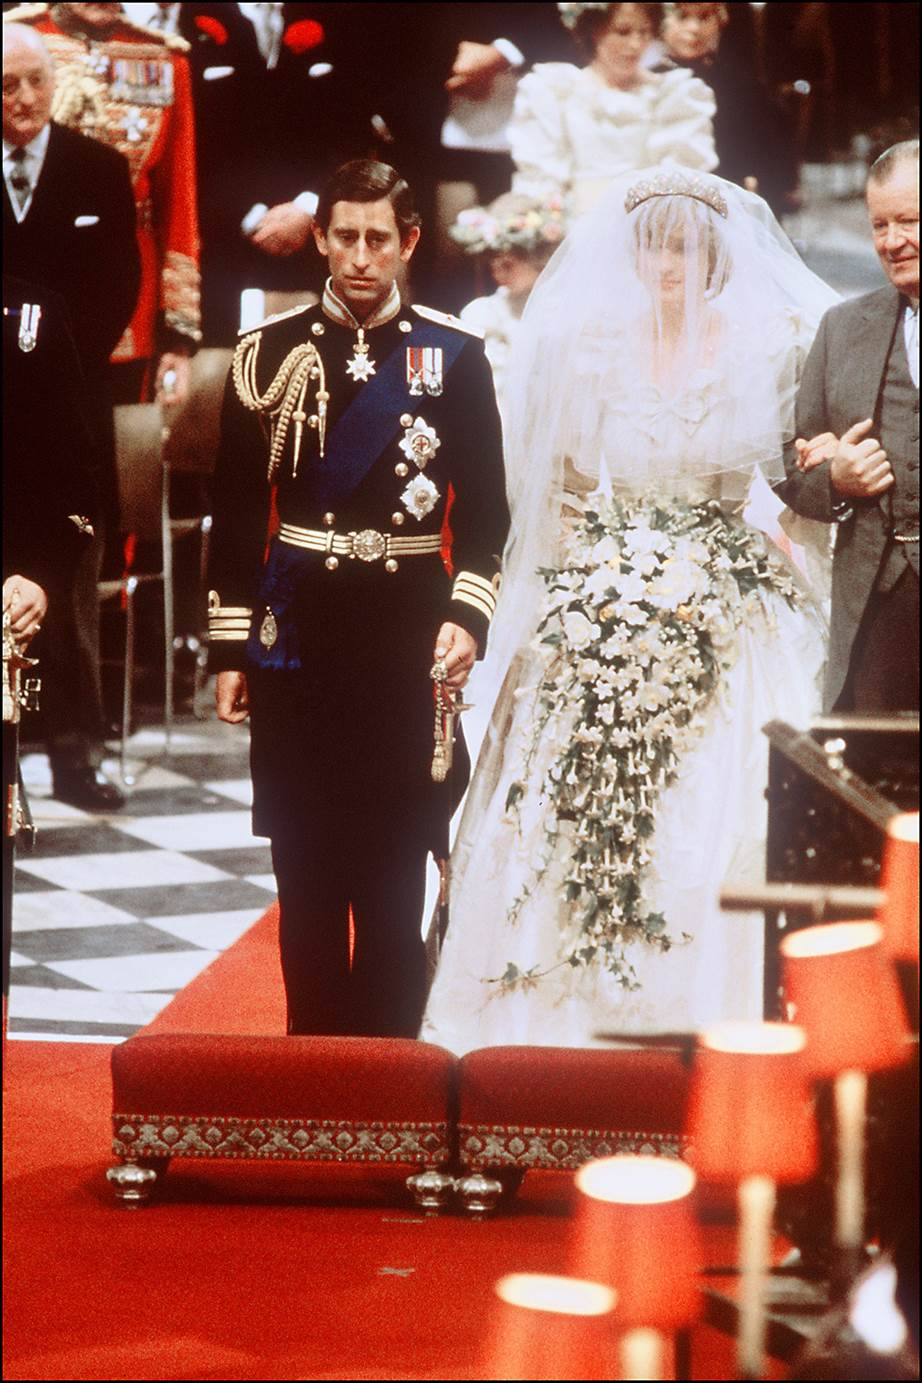 Charles wore his full naval commander uniform for the service while a nervous Diana stumbled her words as she said her vows during the vows Image Getty